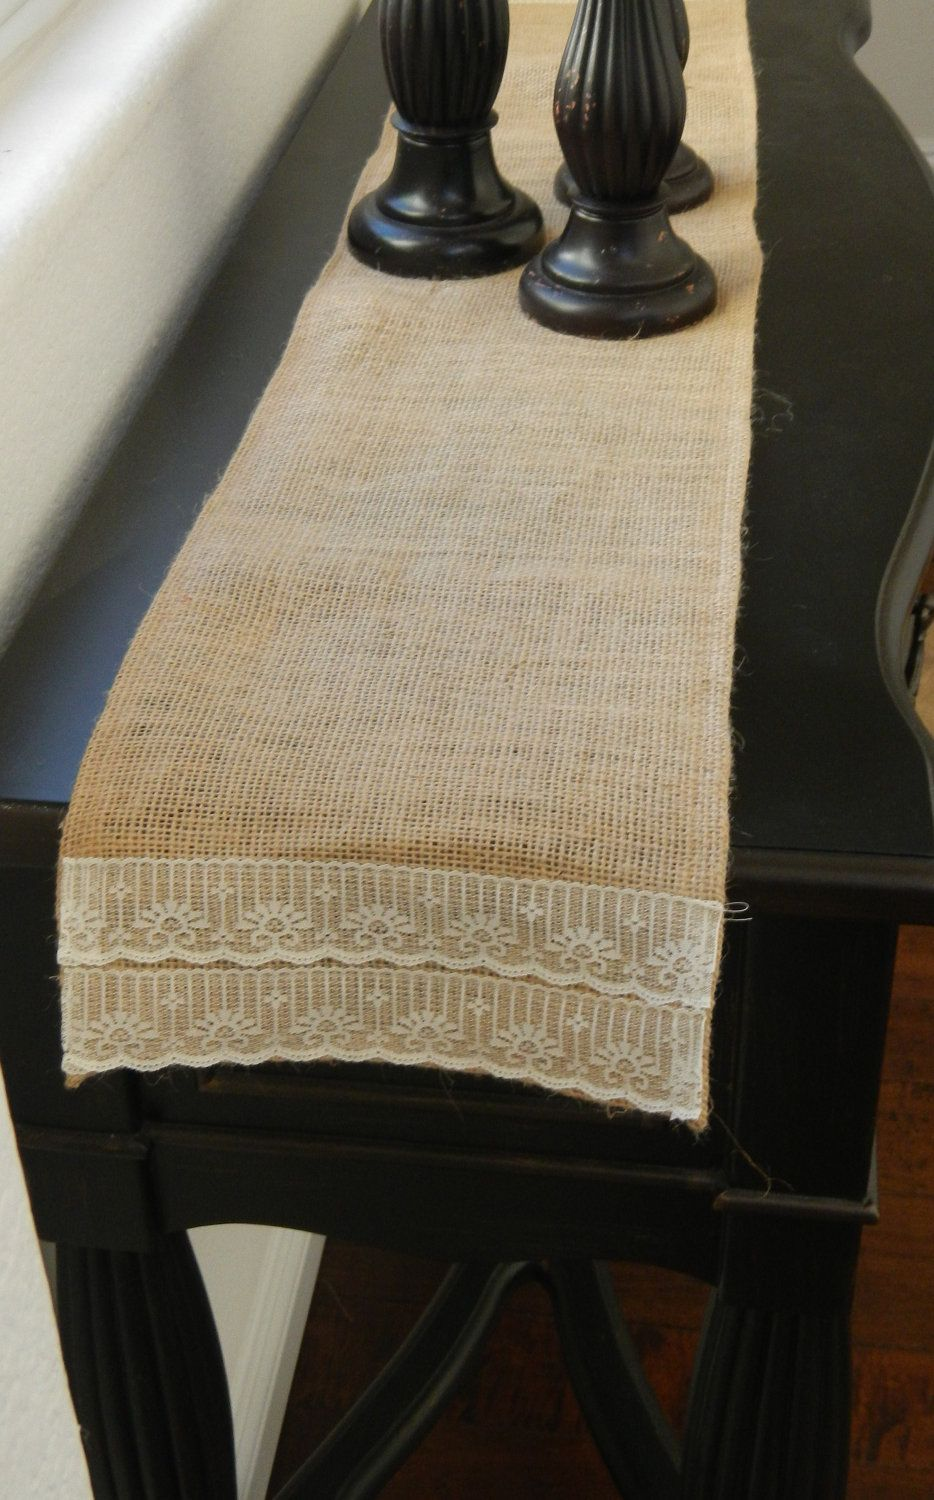 Burlap Table Runner With Lace For Entryway Side